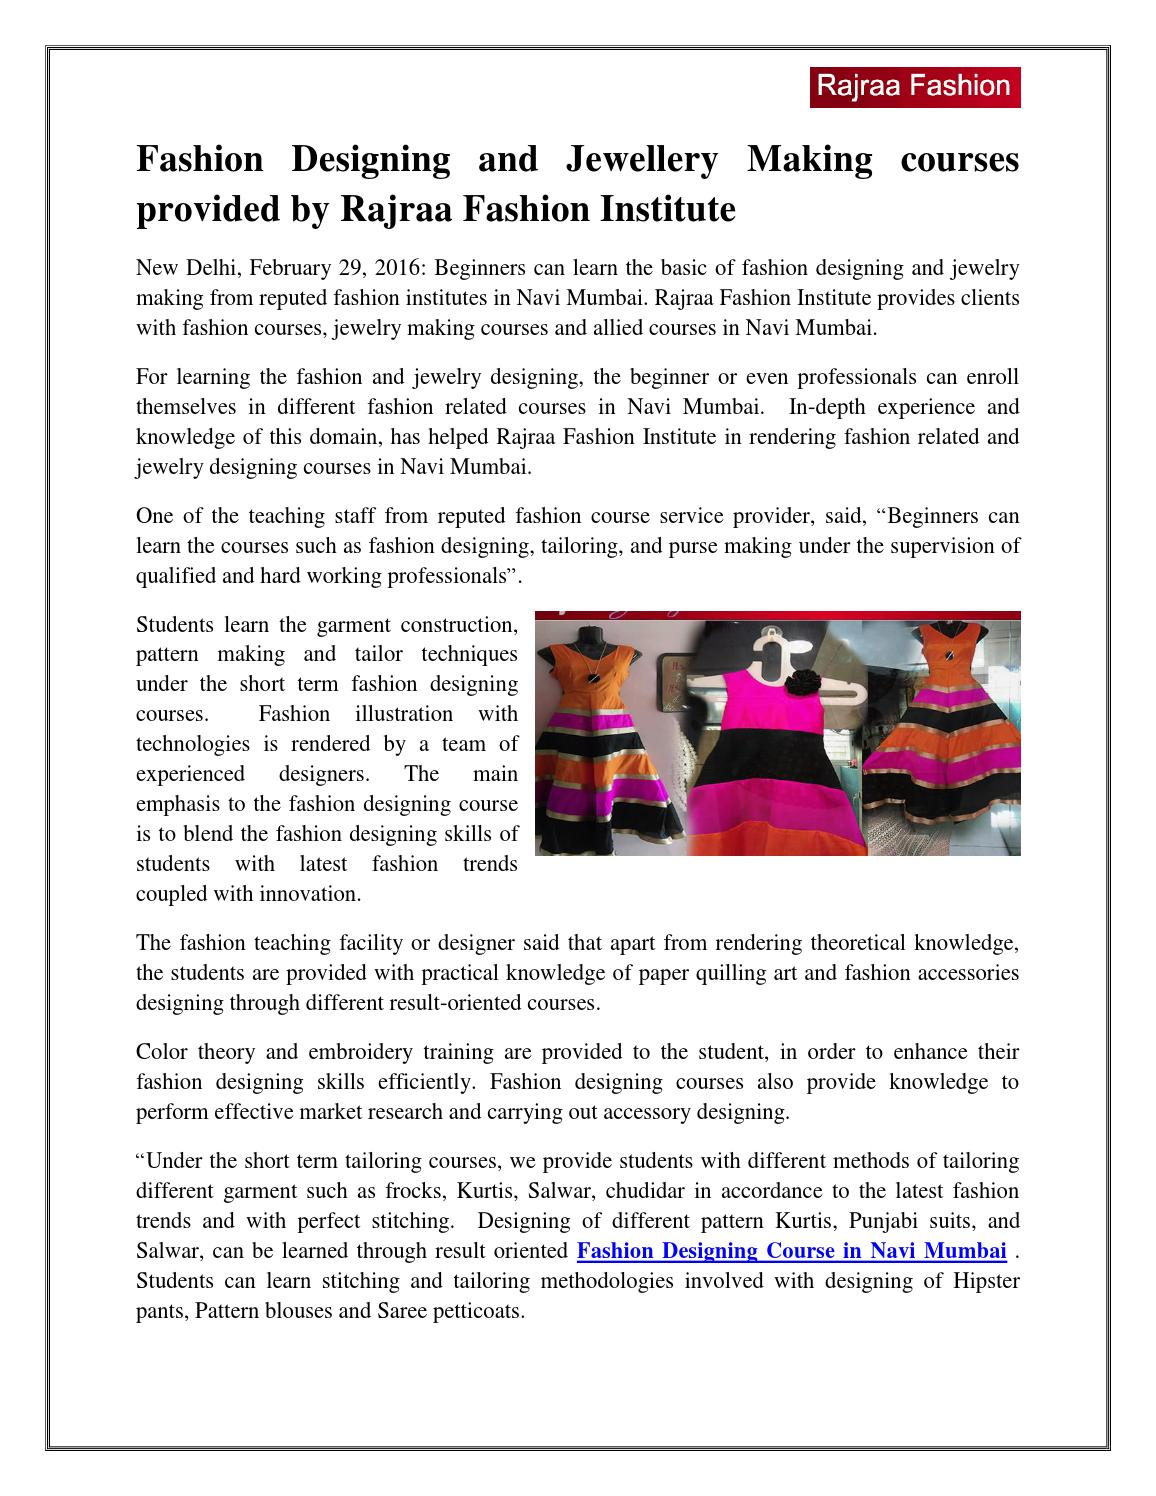 Fashion Designing And Jewellery Making Courses Provided By Rajraa Insute Fashionr Issuu